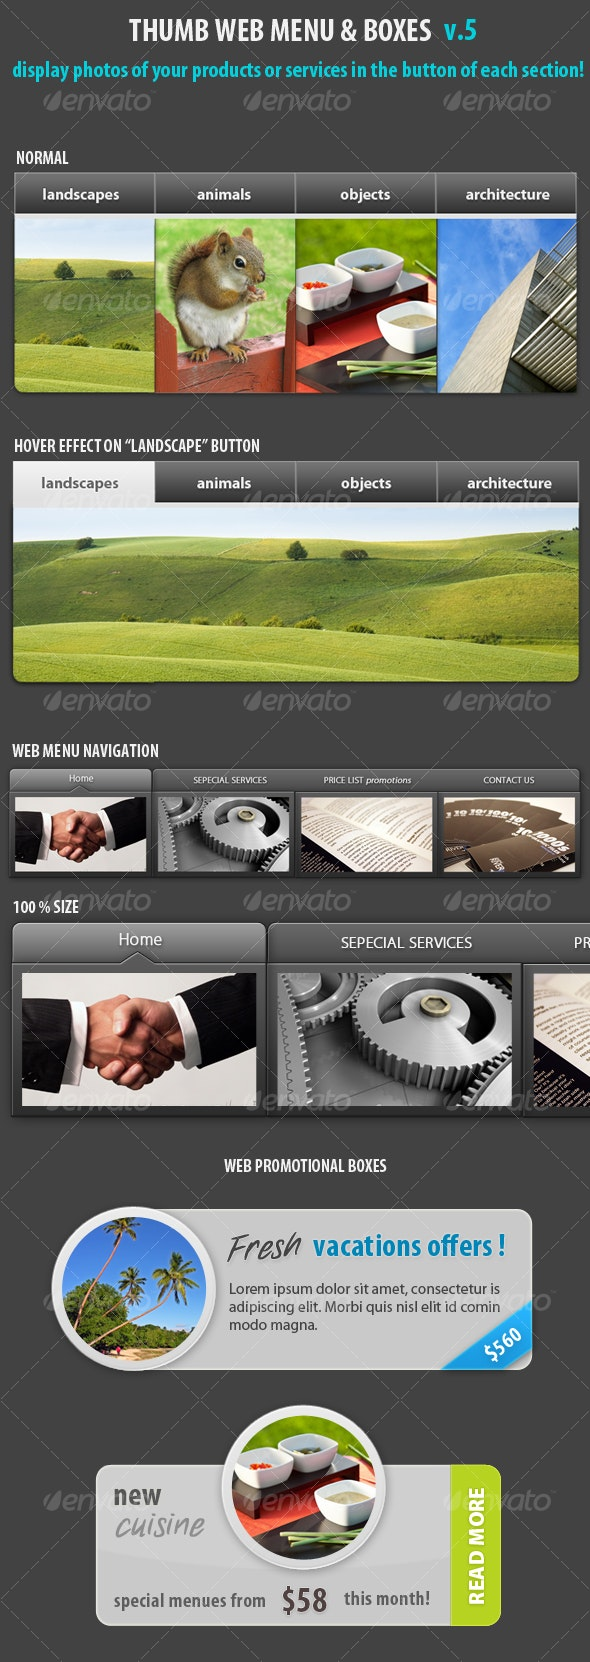 Thumb web menu navigation place your photo! v5 - Miscellaneous Web Elements